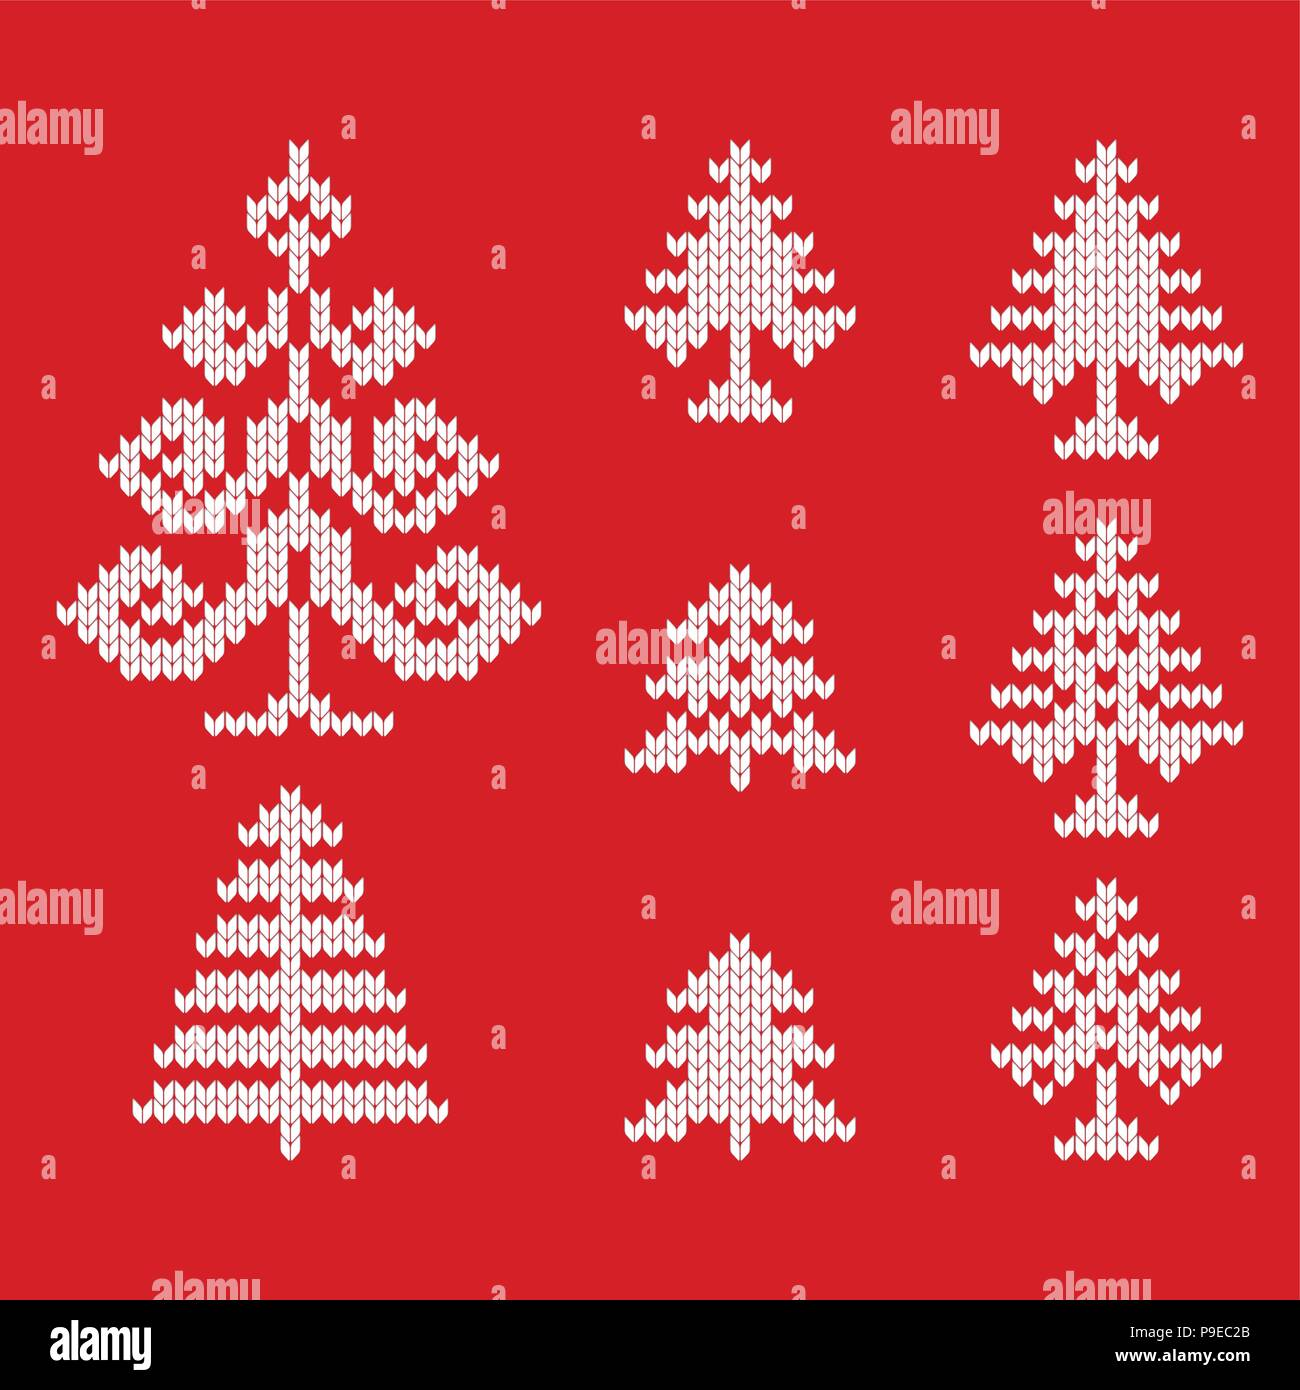 Knitted icons of christmas trees for drawing greeting cards and knitted icons of christmas trees for drawing greeting cards and advertising for christmas and new year m4hsunfo